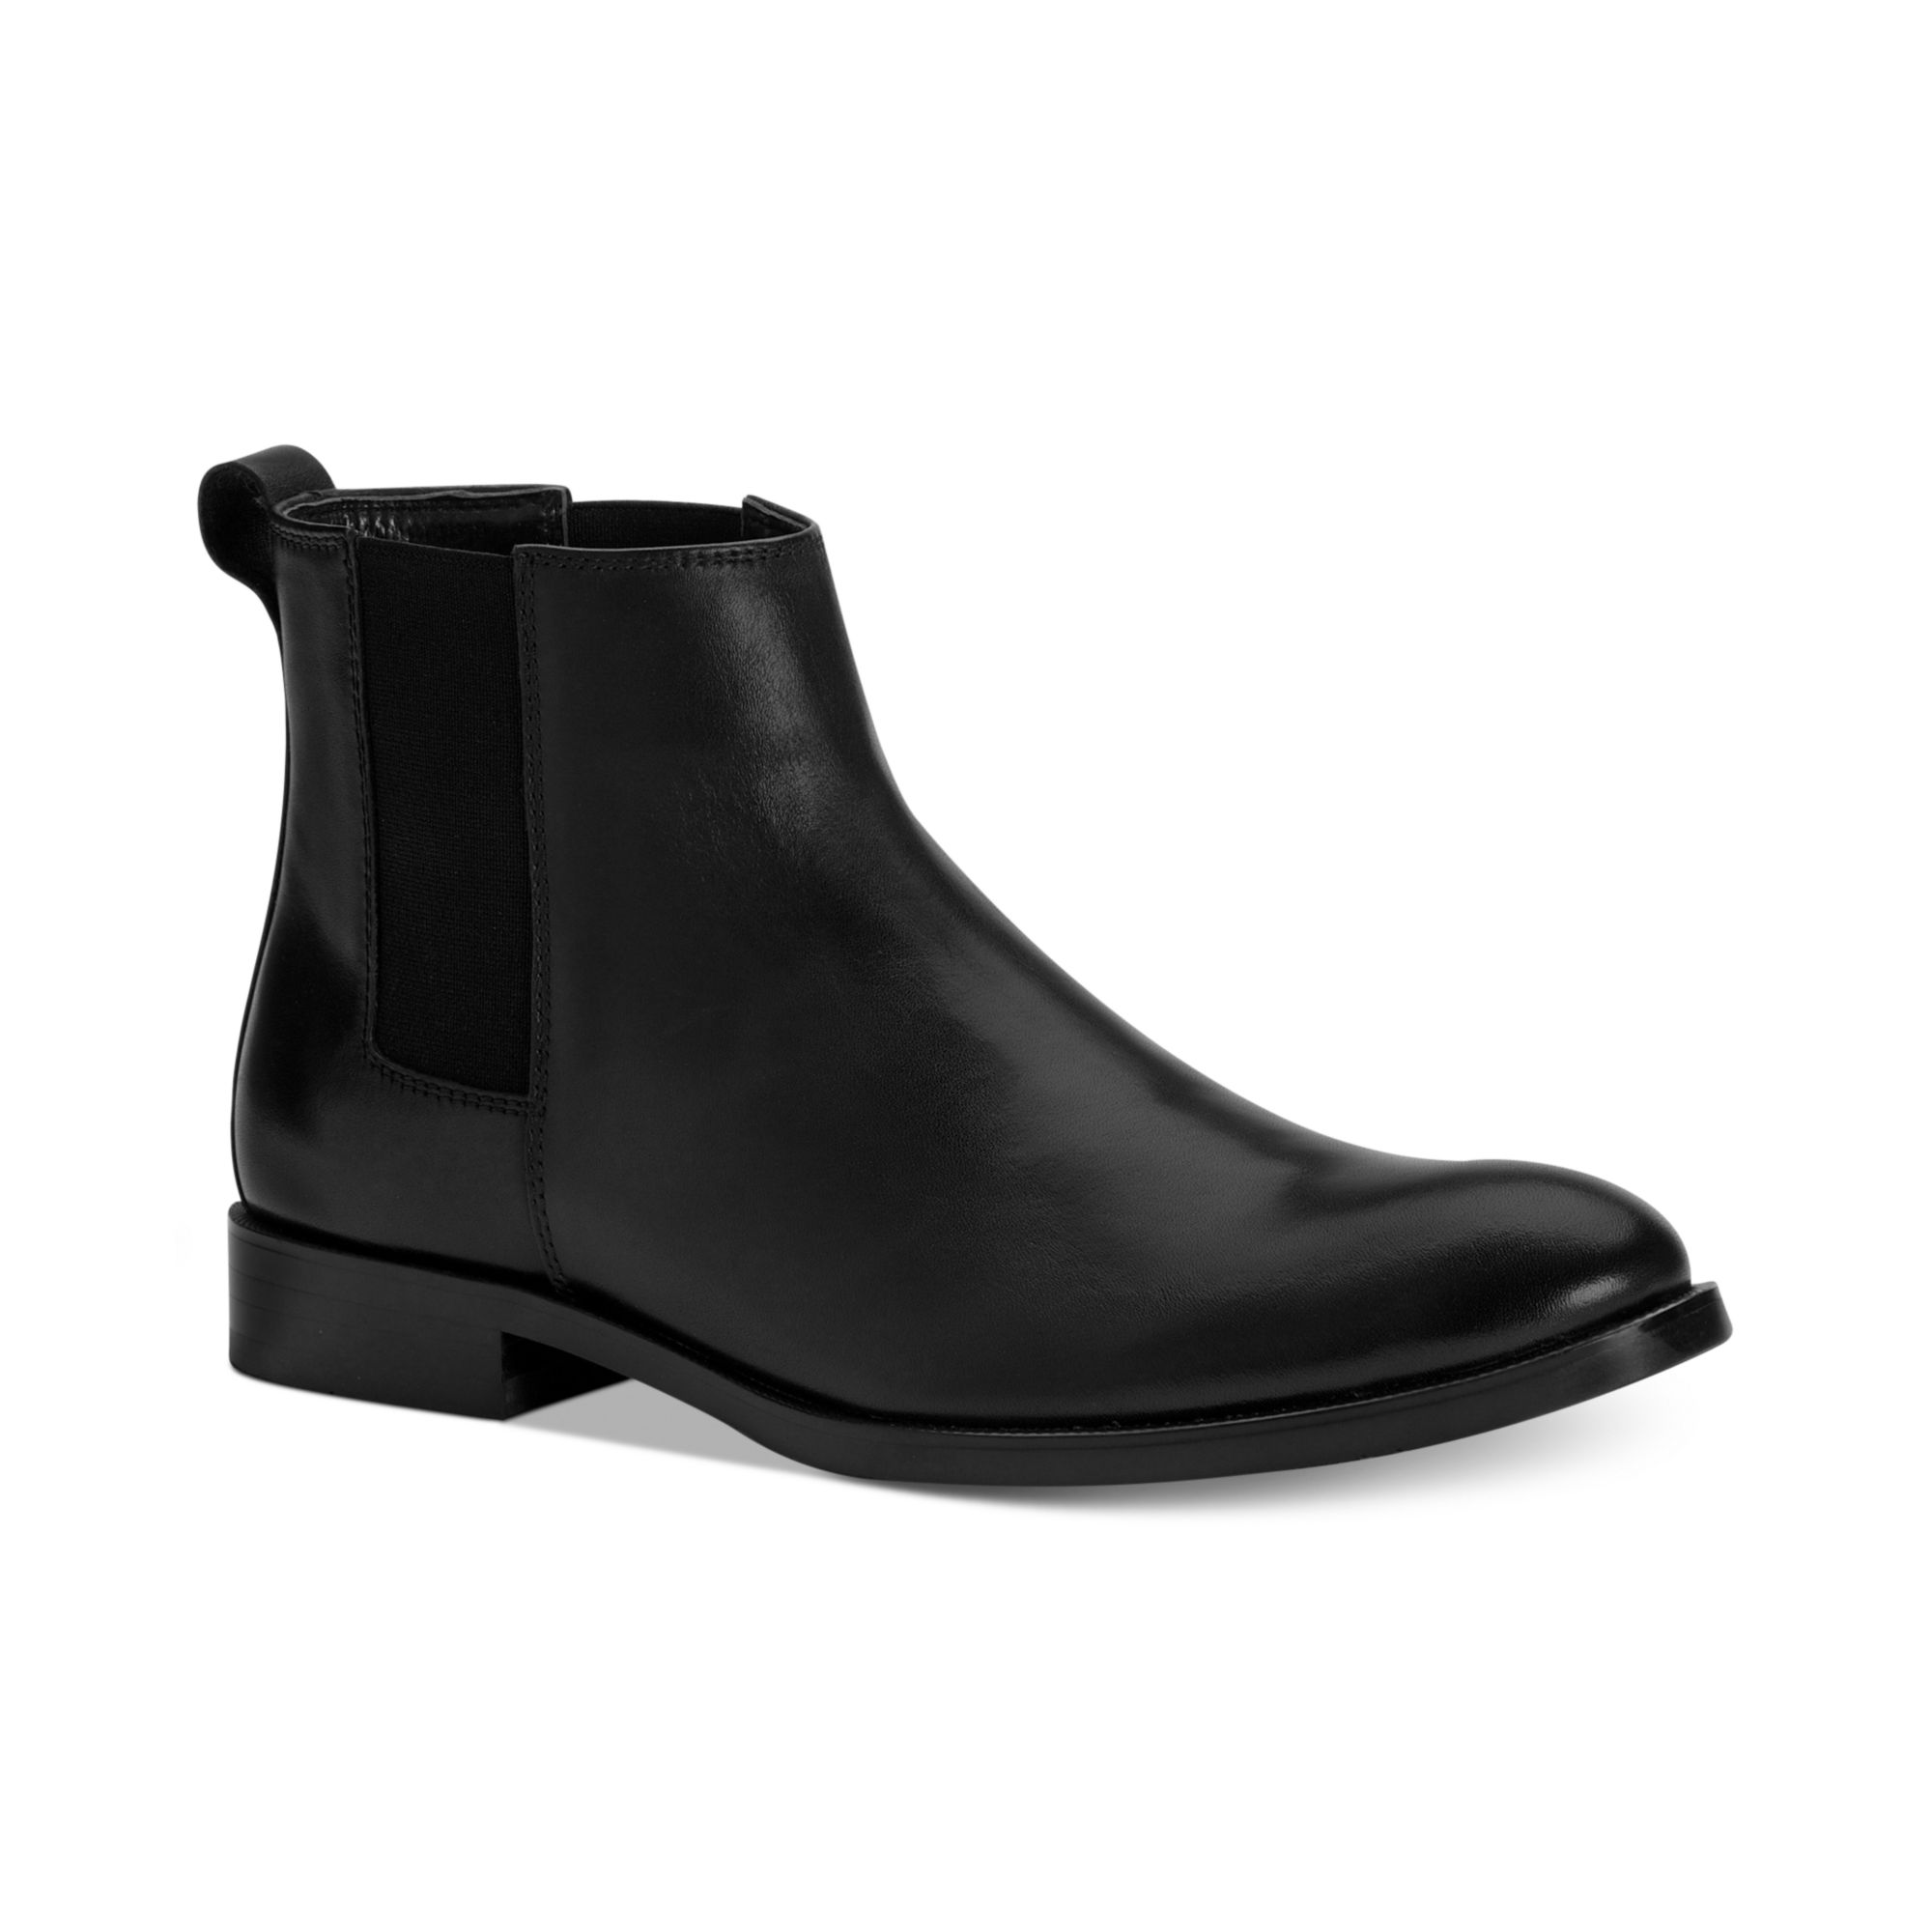 Calvin Klein Cambell Chelsea Boots in